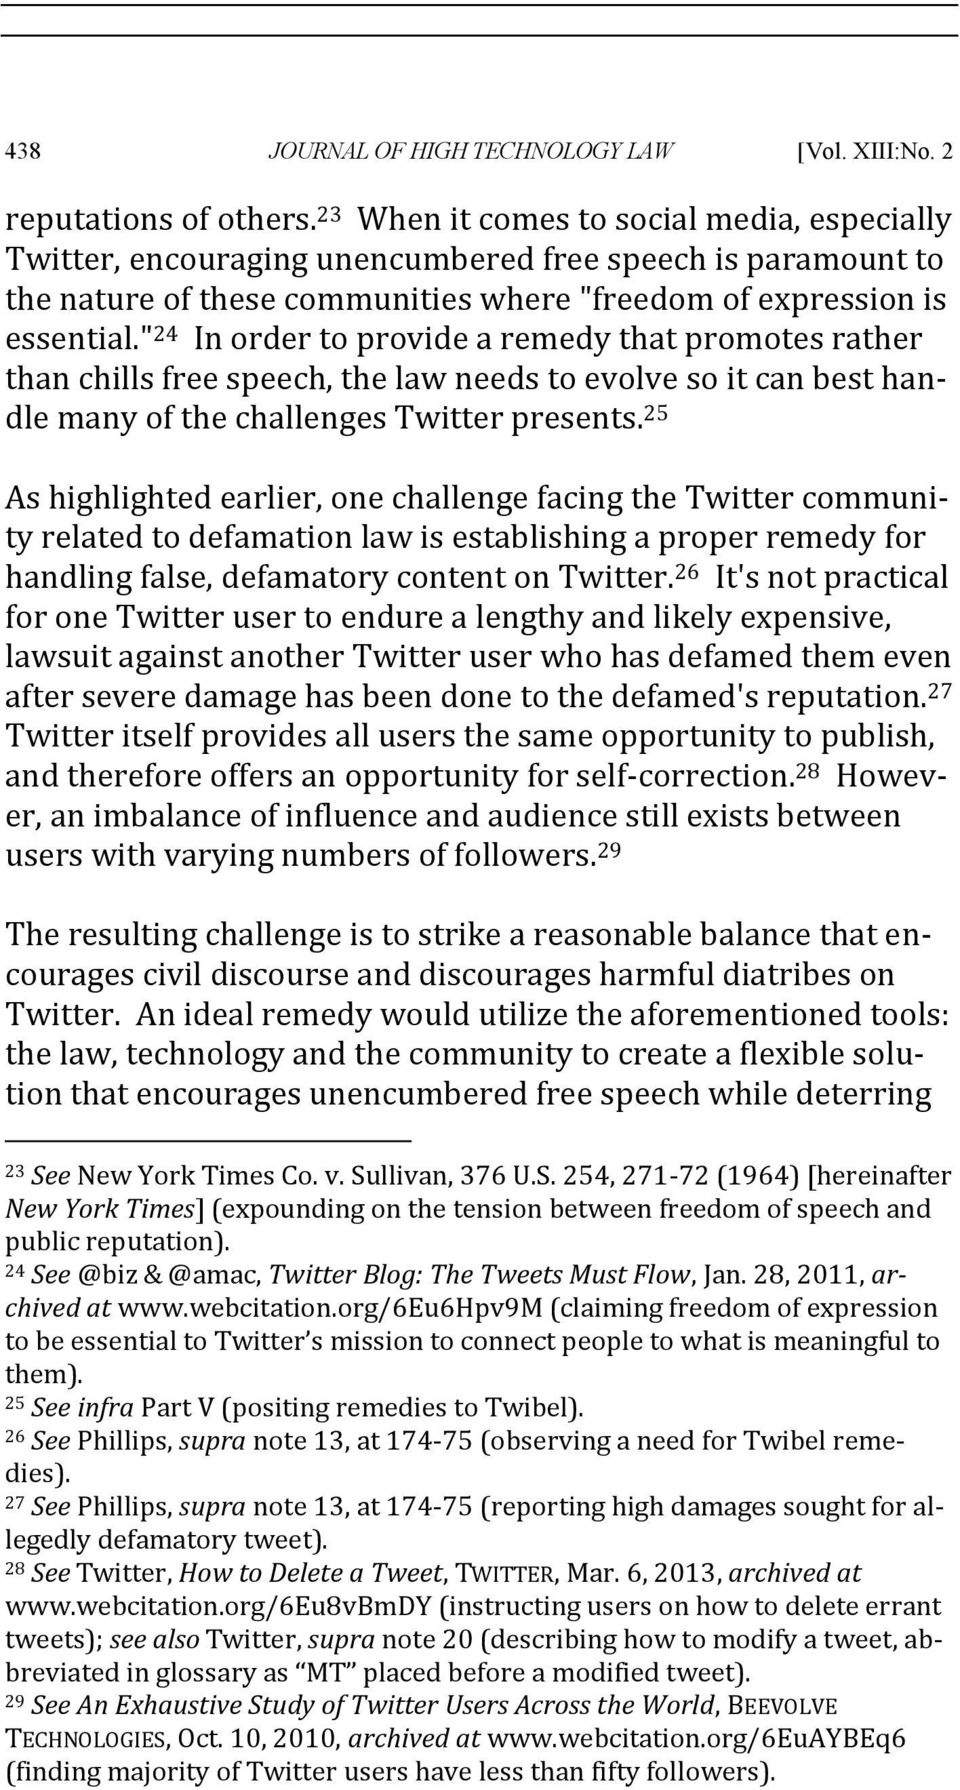 """ 24 In order to provide a remedy that promotes rather than chills free speech, the law needs to evolve so it can best handle many of the challenges Twitter presents."